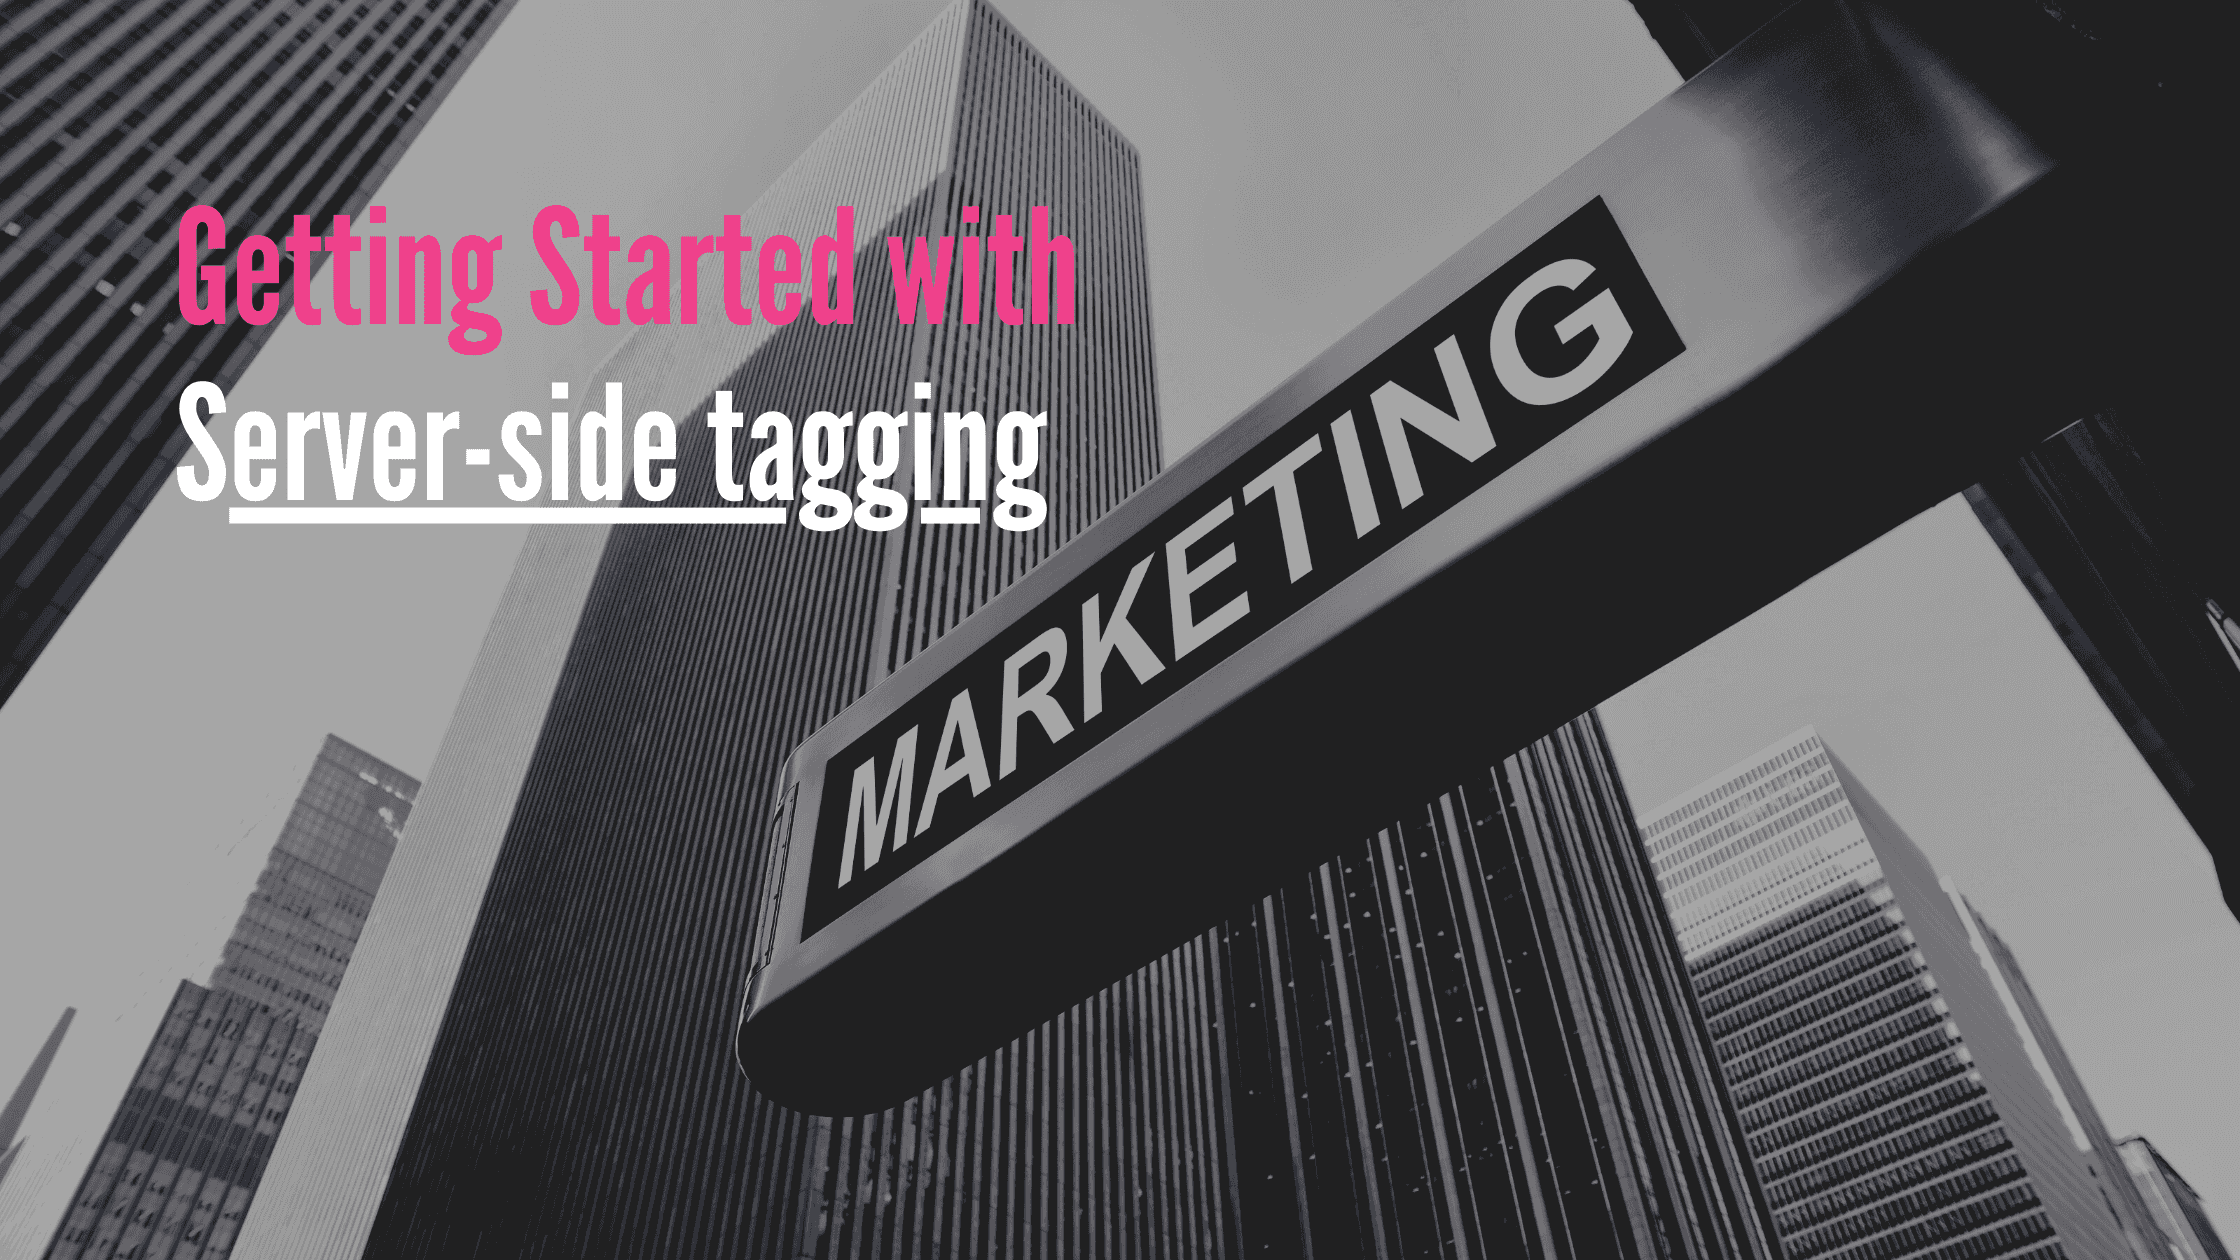 Everything marketers need to know | Getting Started with server-side tagging